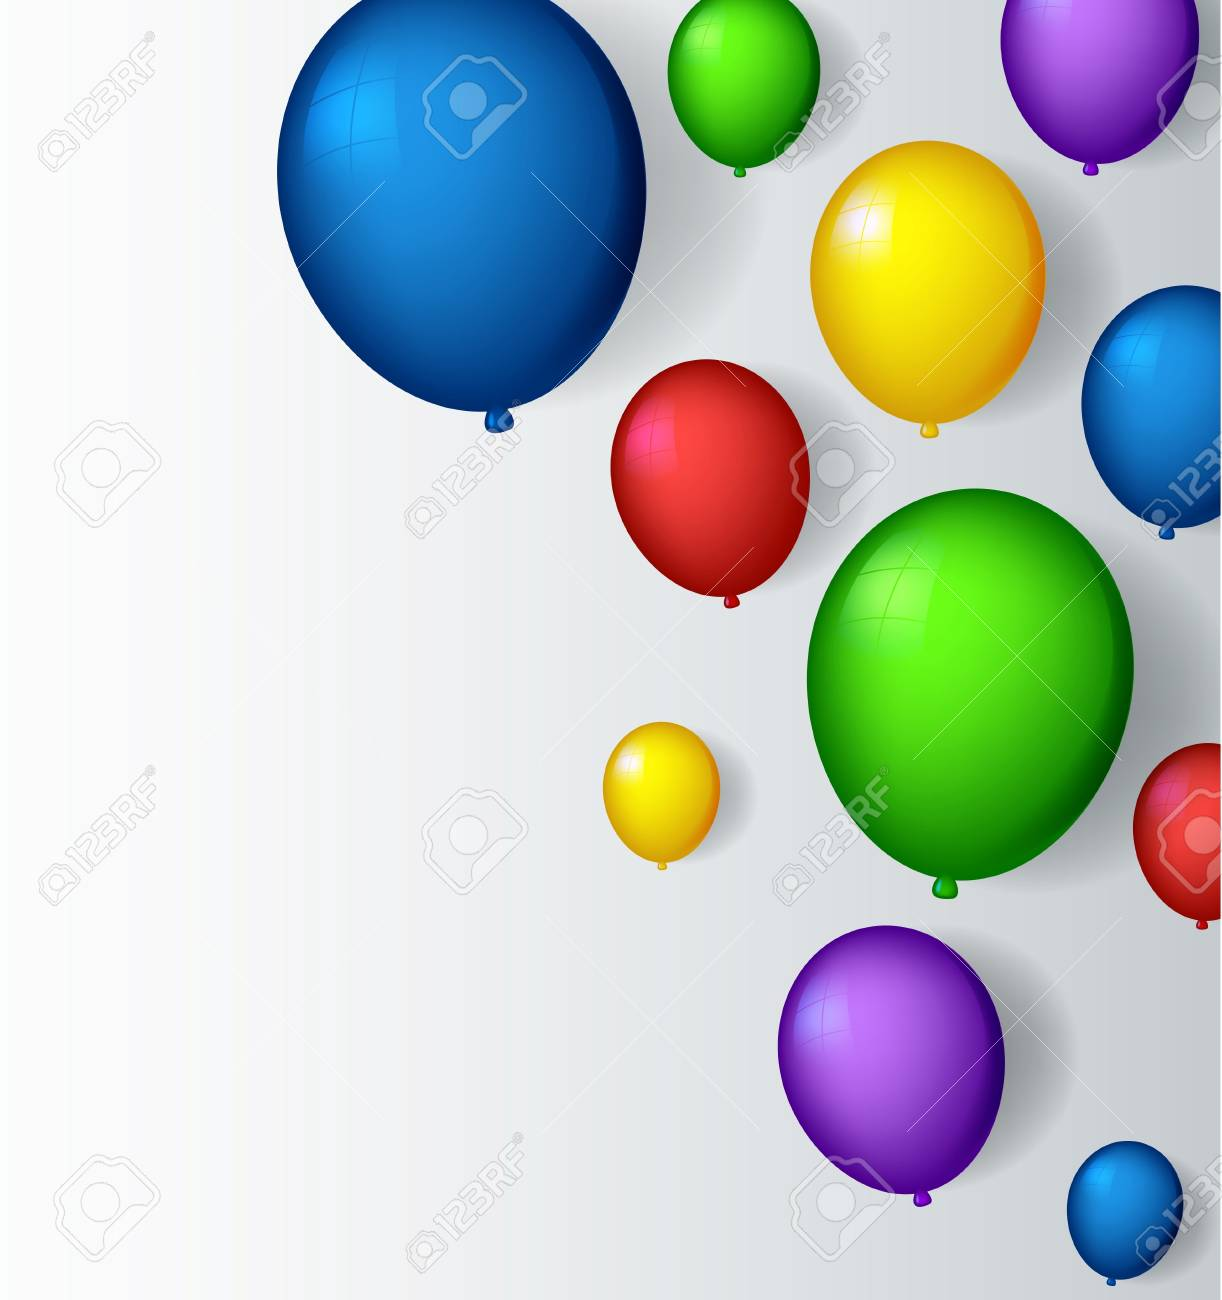 vector illustration of decoration with balloons Stock Vector - 19483355